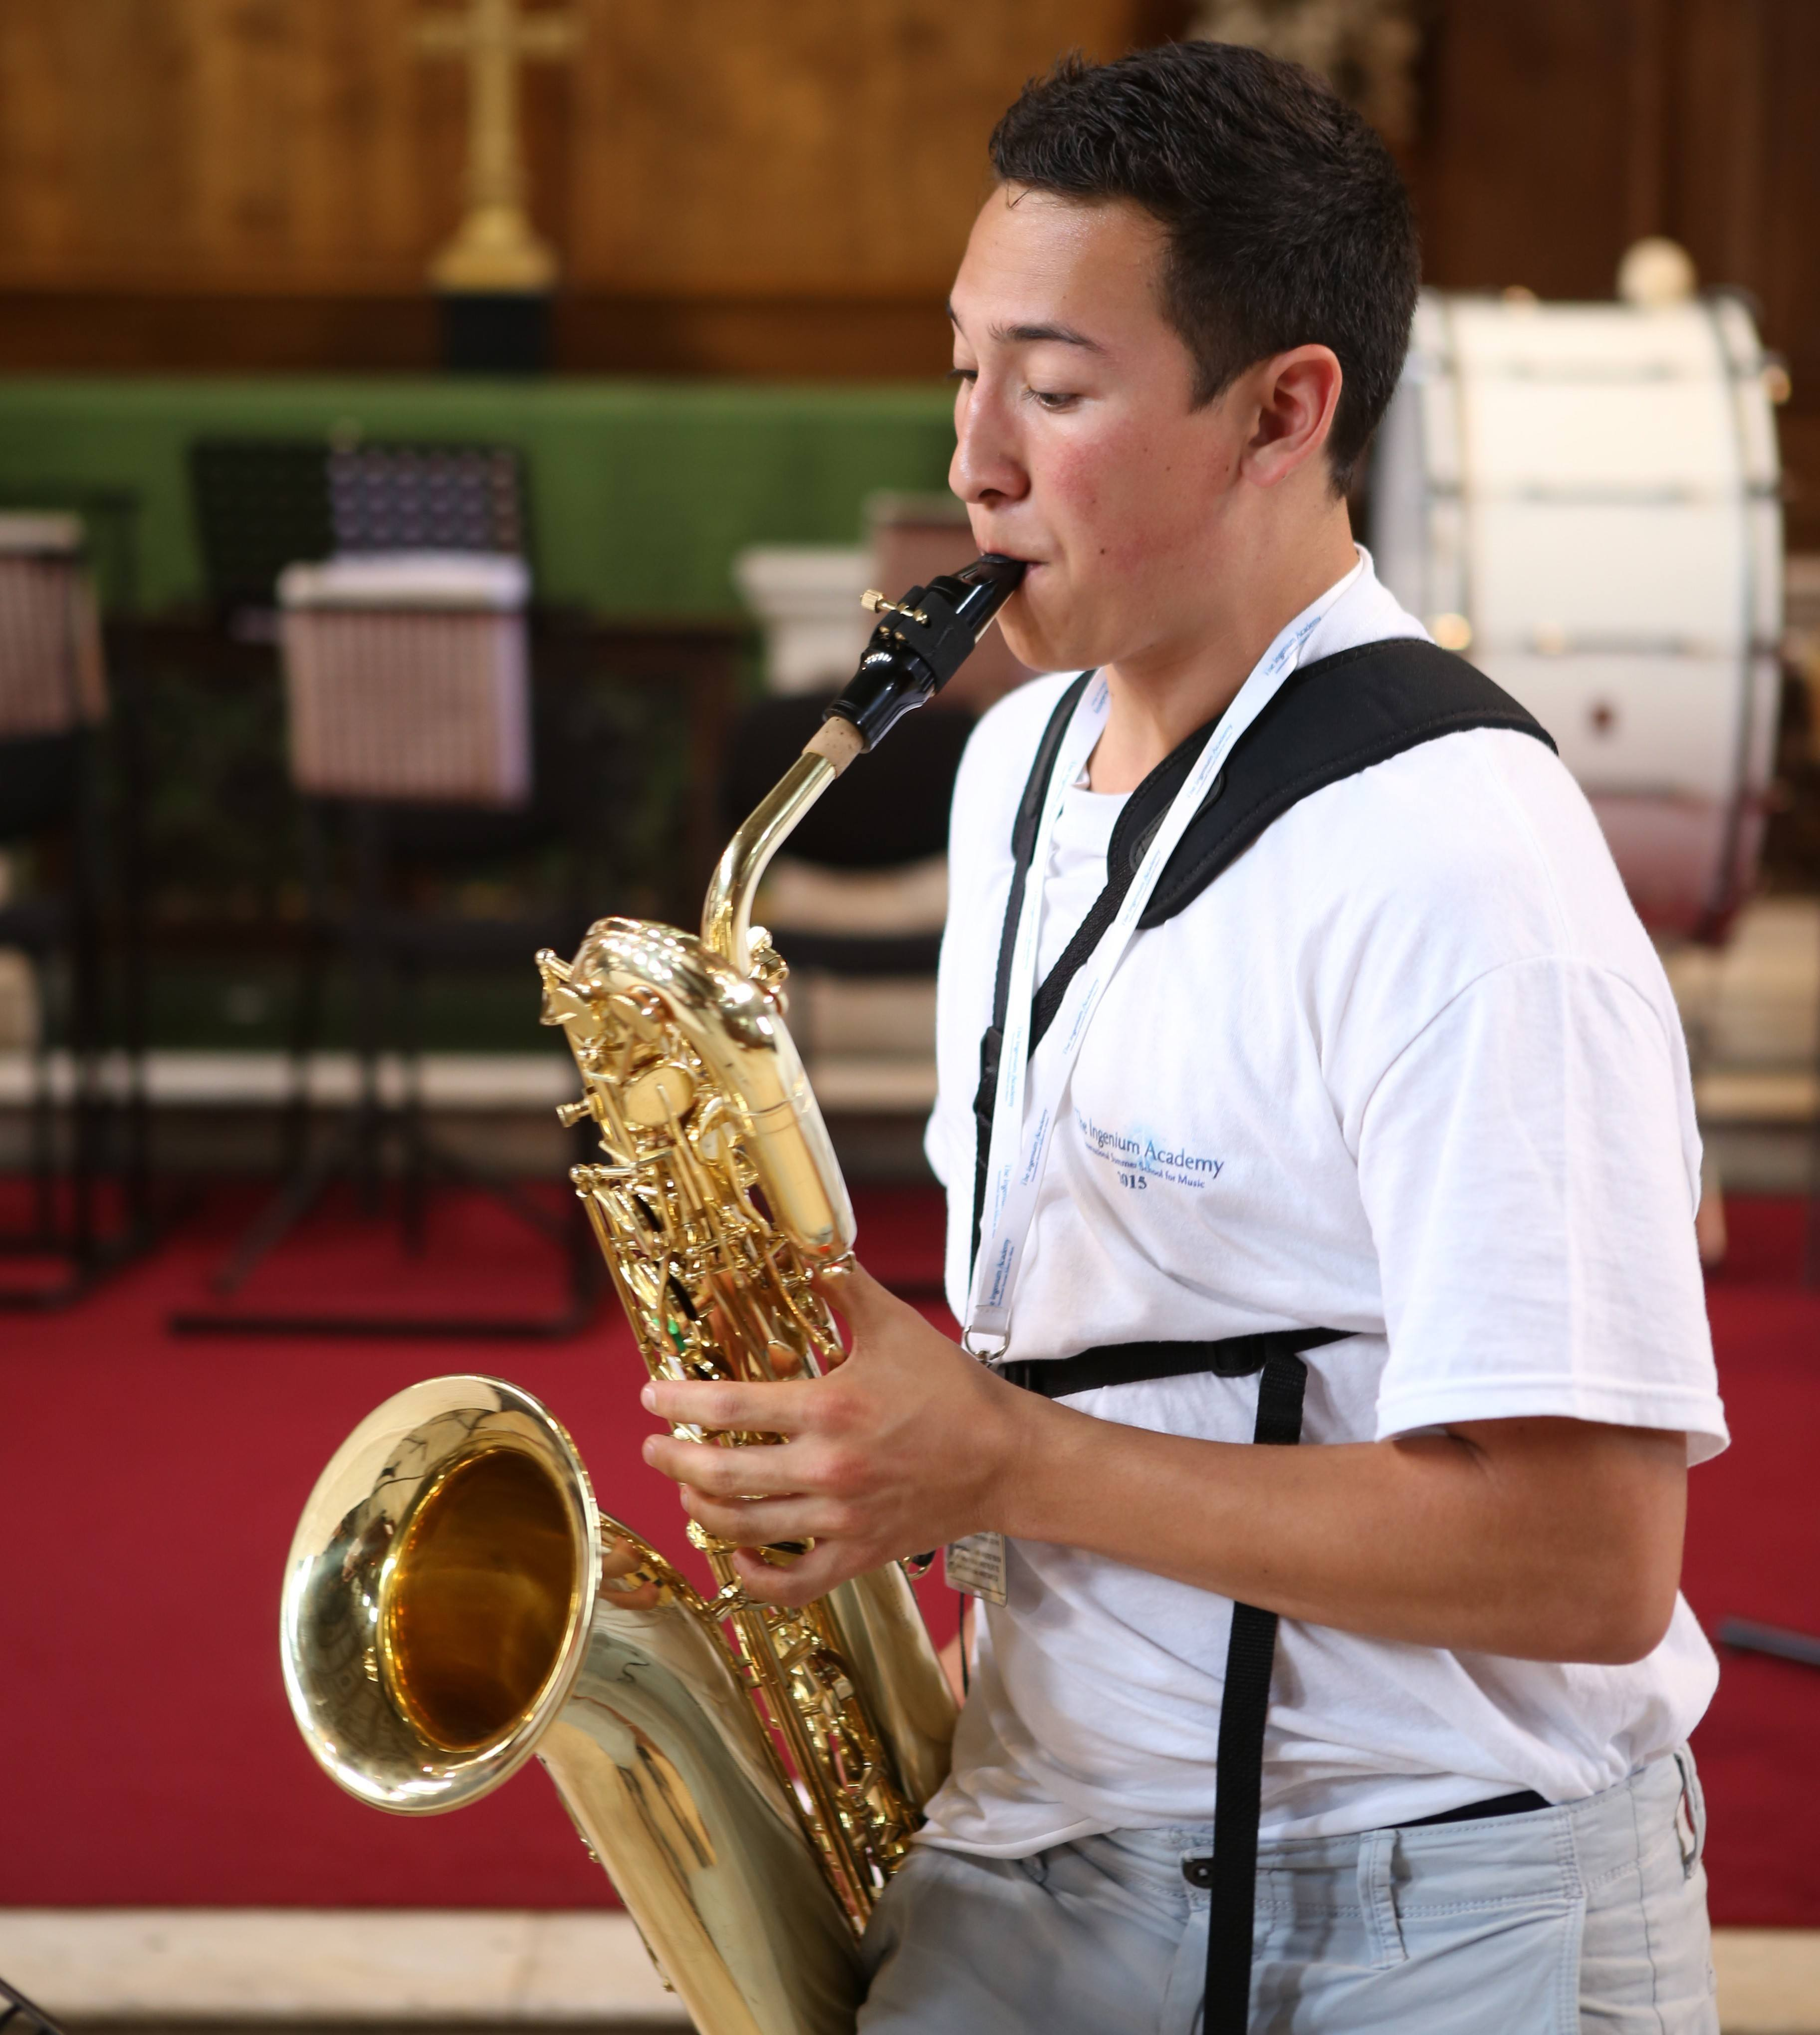 Baritone Saxophone student rehearsing with the Ingenium Academy Saxophone Quartet in London